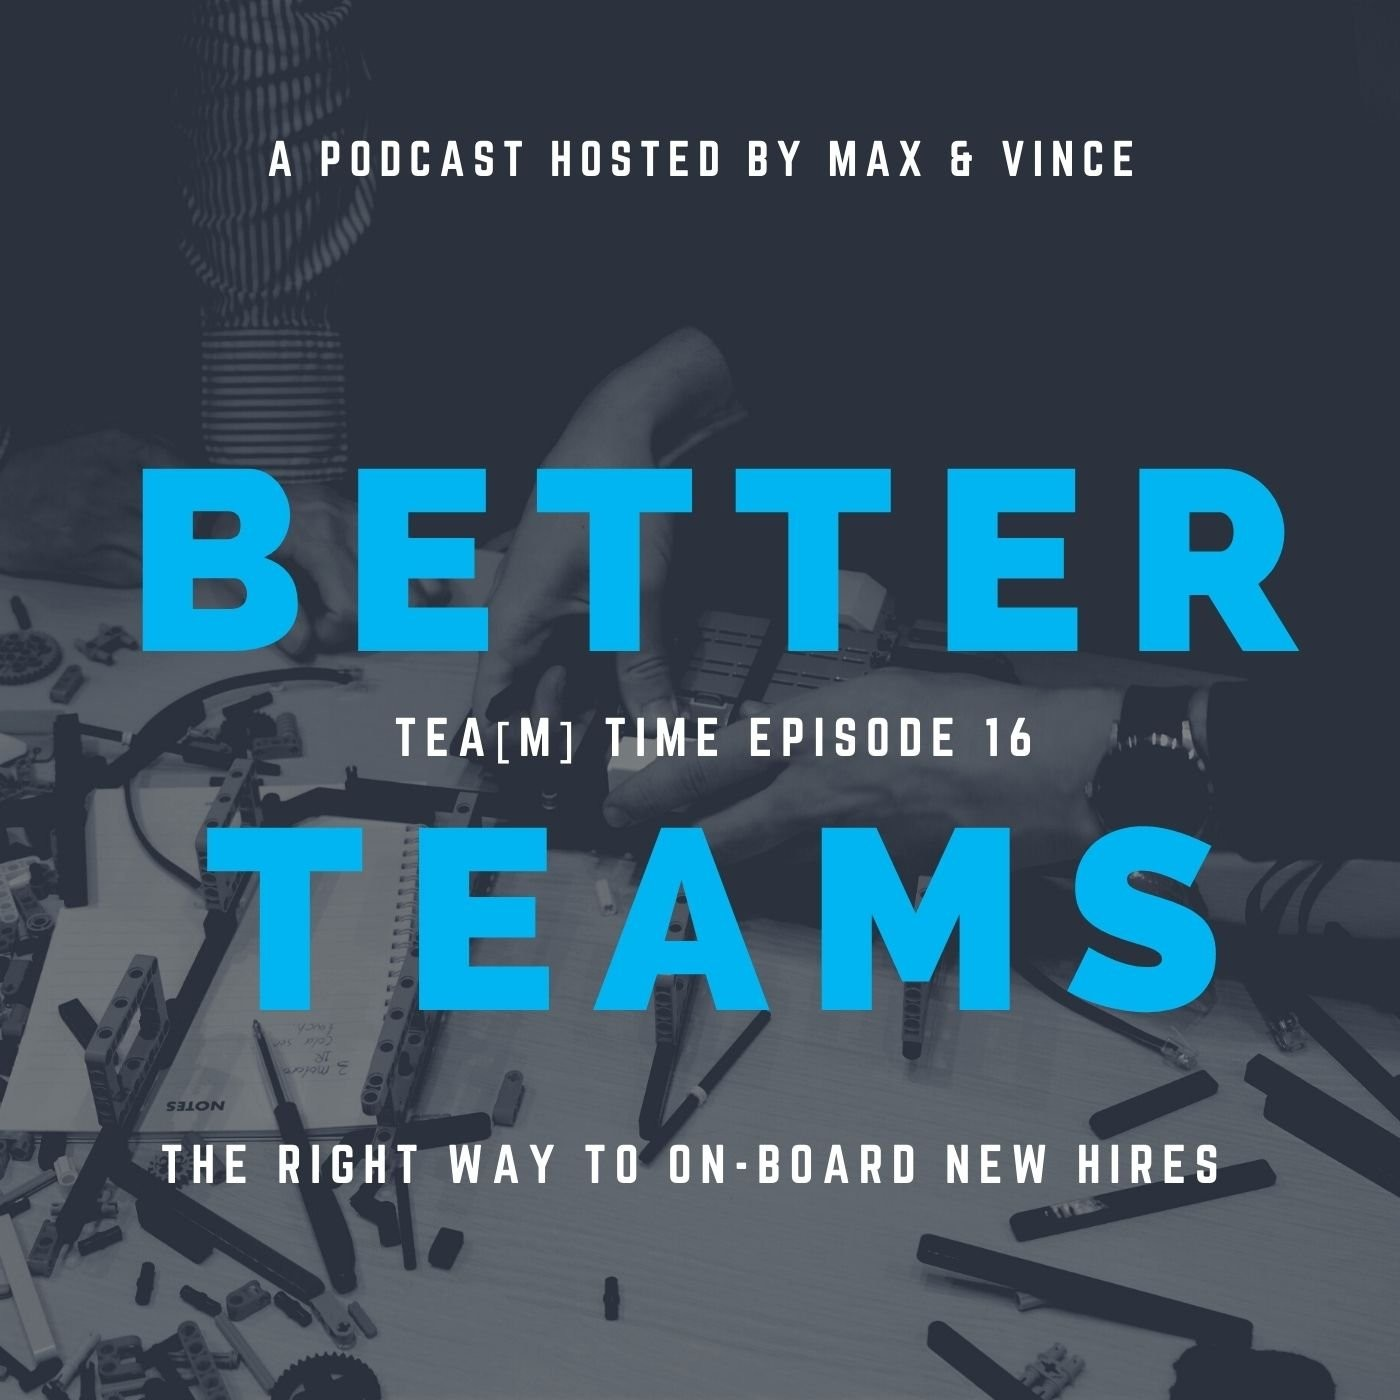 TEA(M) TIME - Episode 16 - The Right Way to On-board New Hires